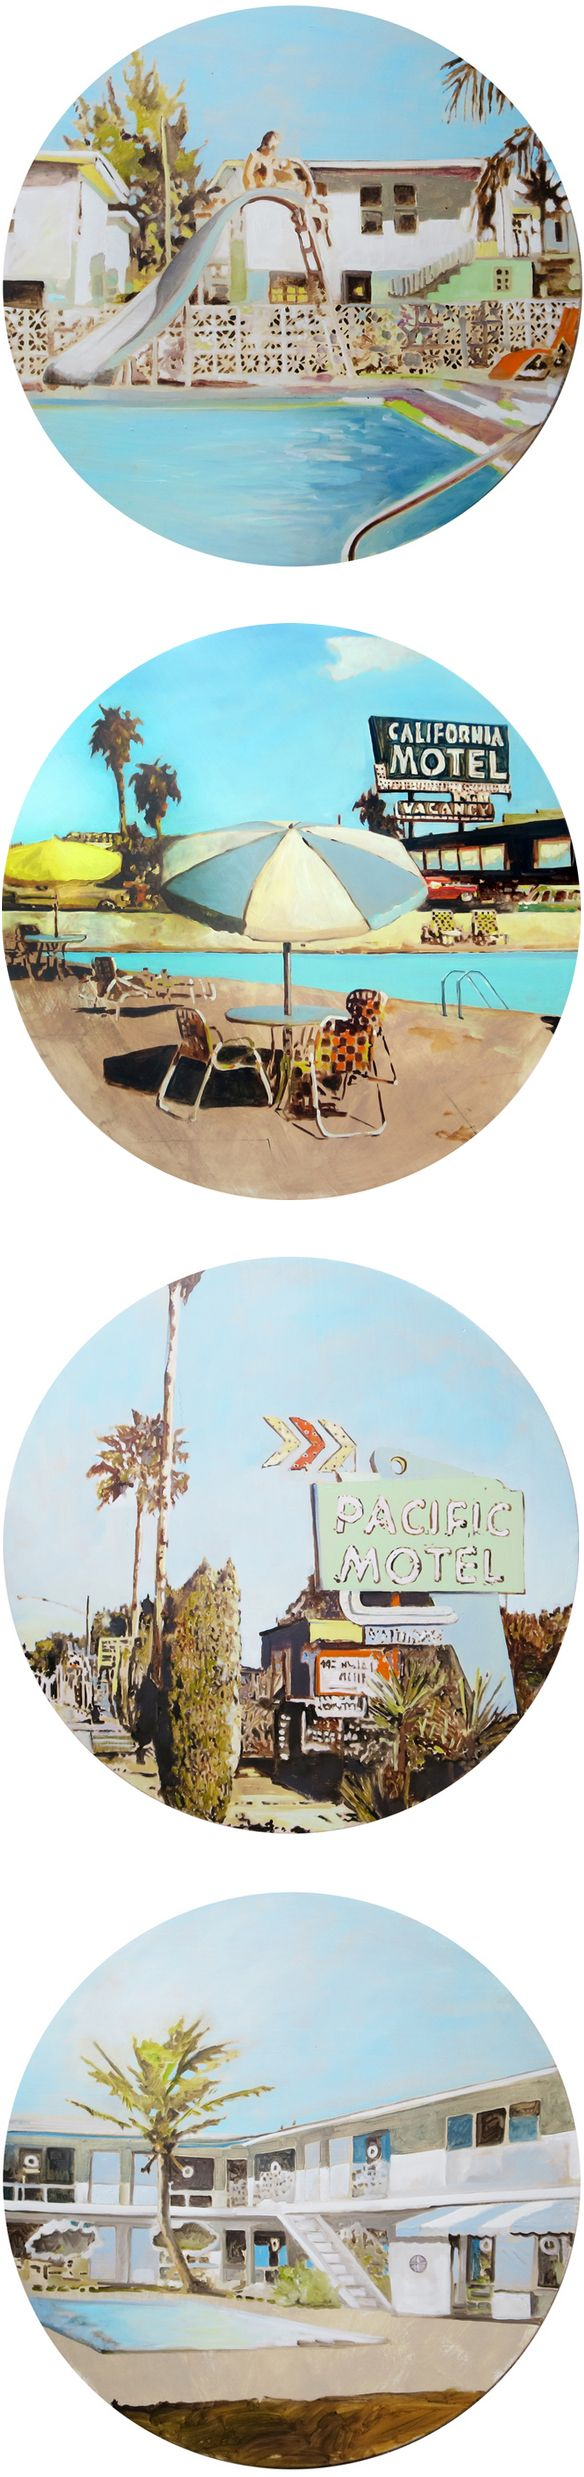 sethsmith on the @jealouscurator   Circles of pools and motels! I can here the summer time music playing in the background.